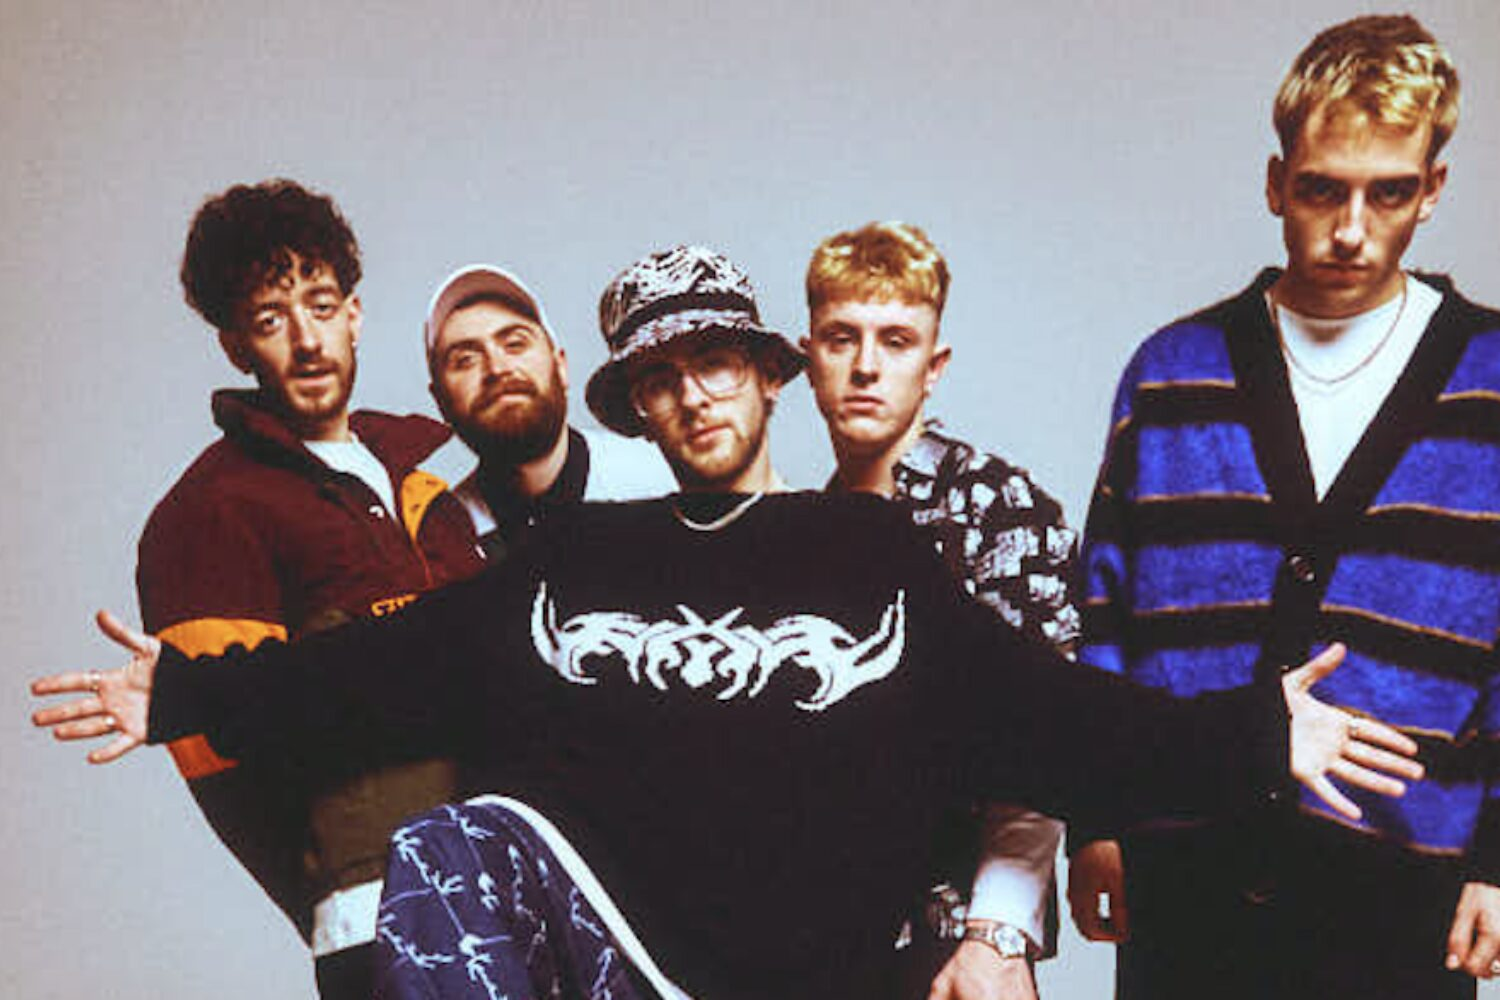 Easy Life announce new two-track single 'who gives a f**k?'